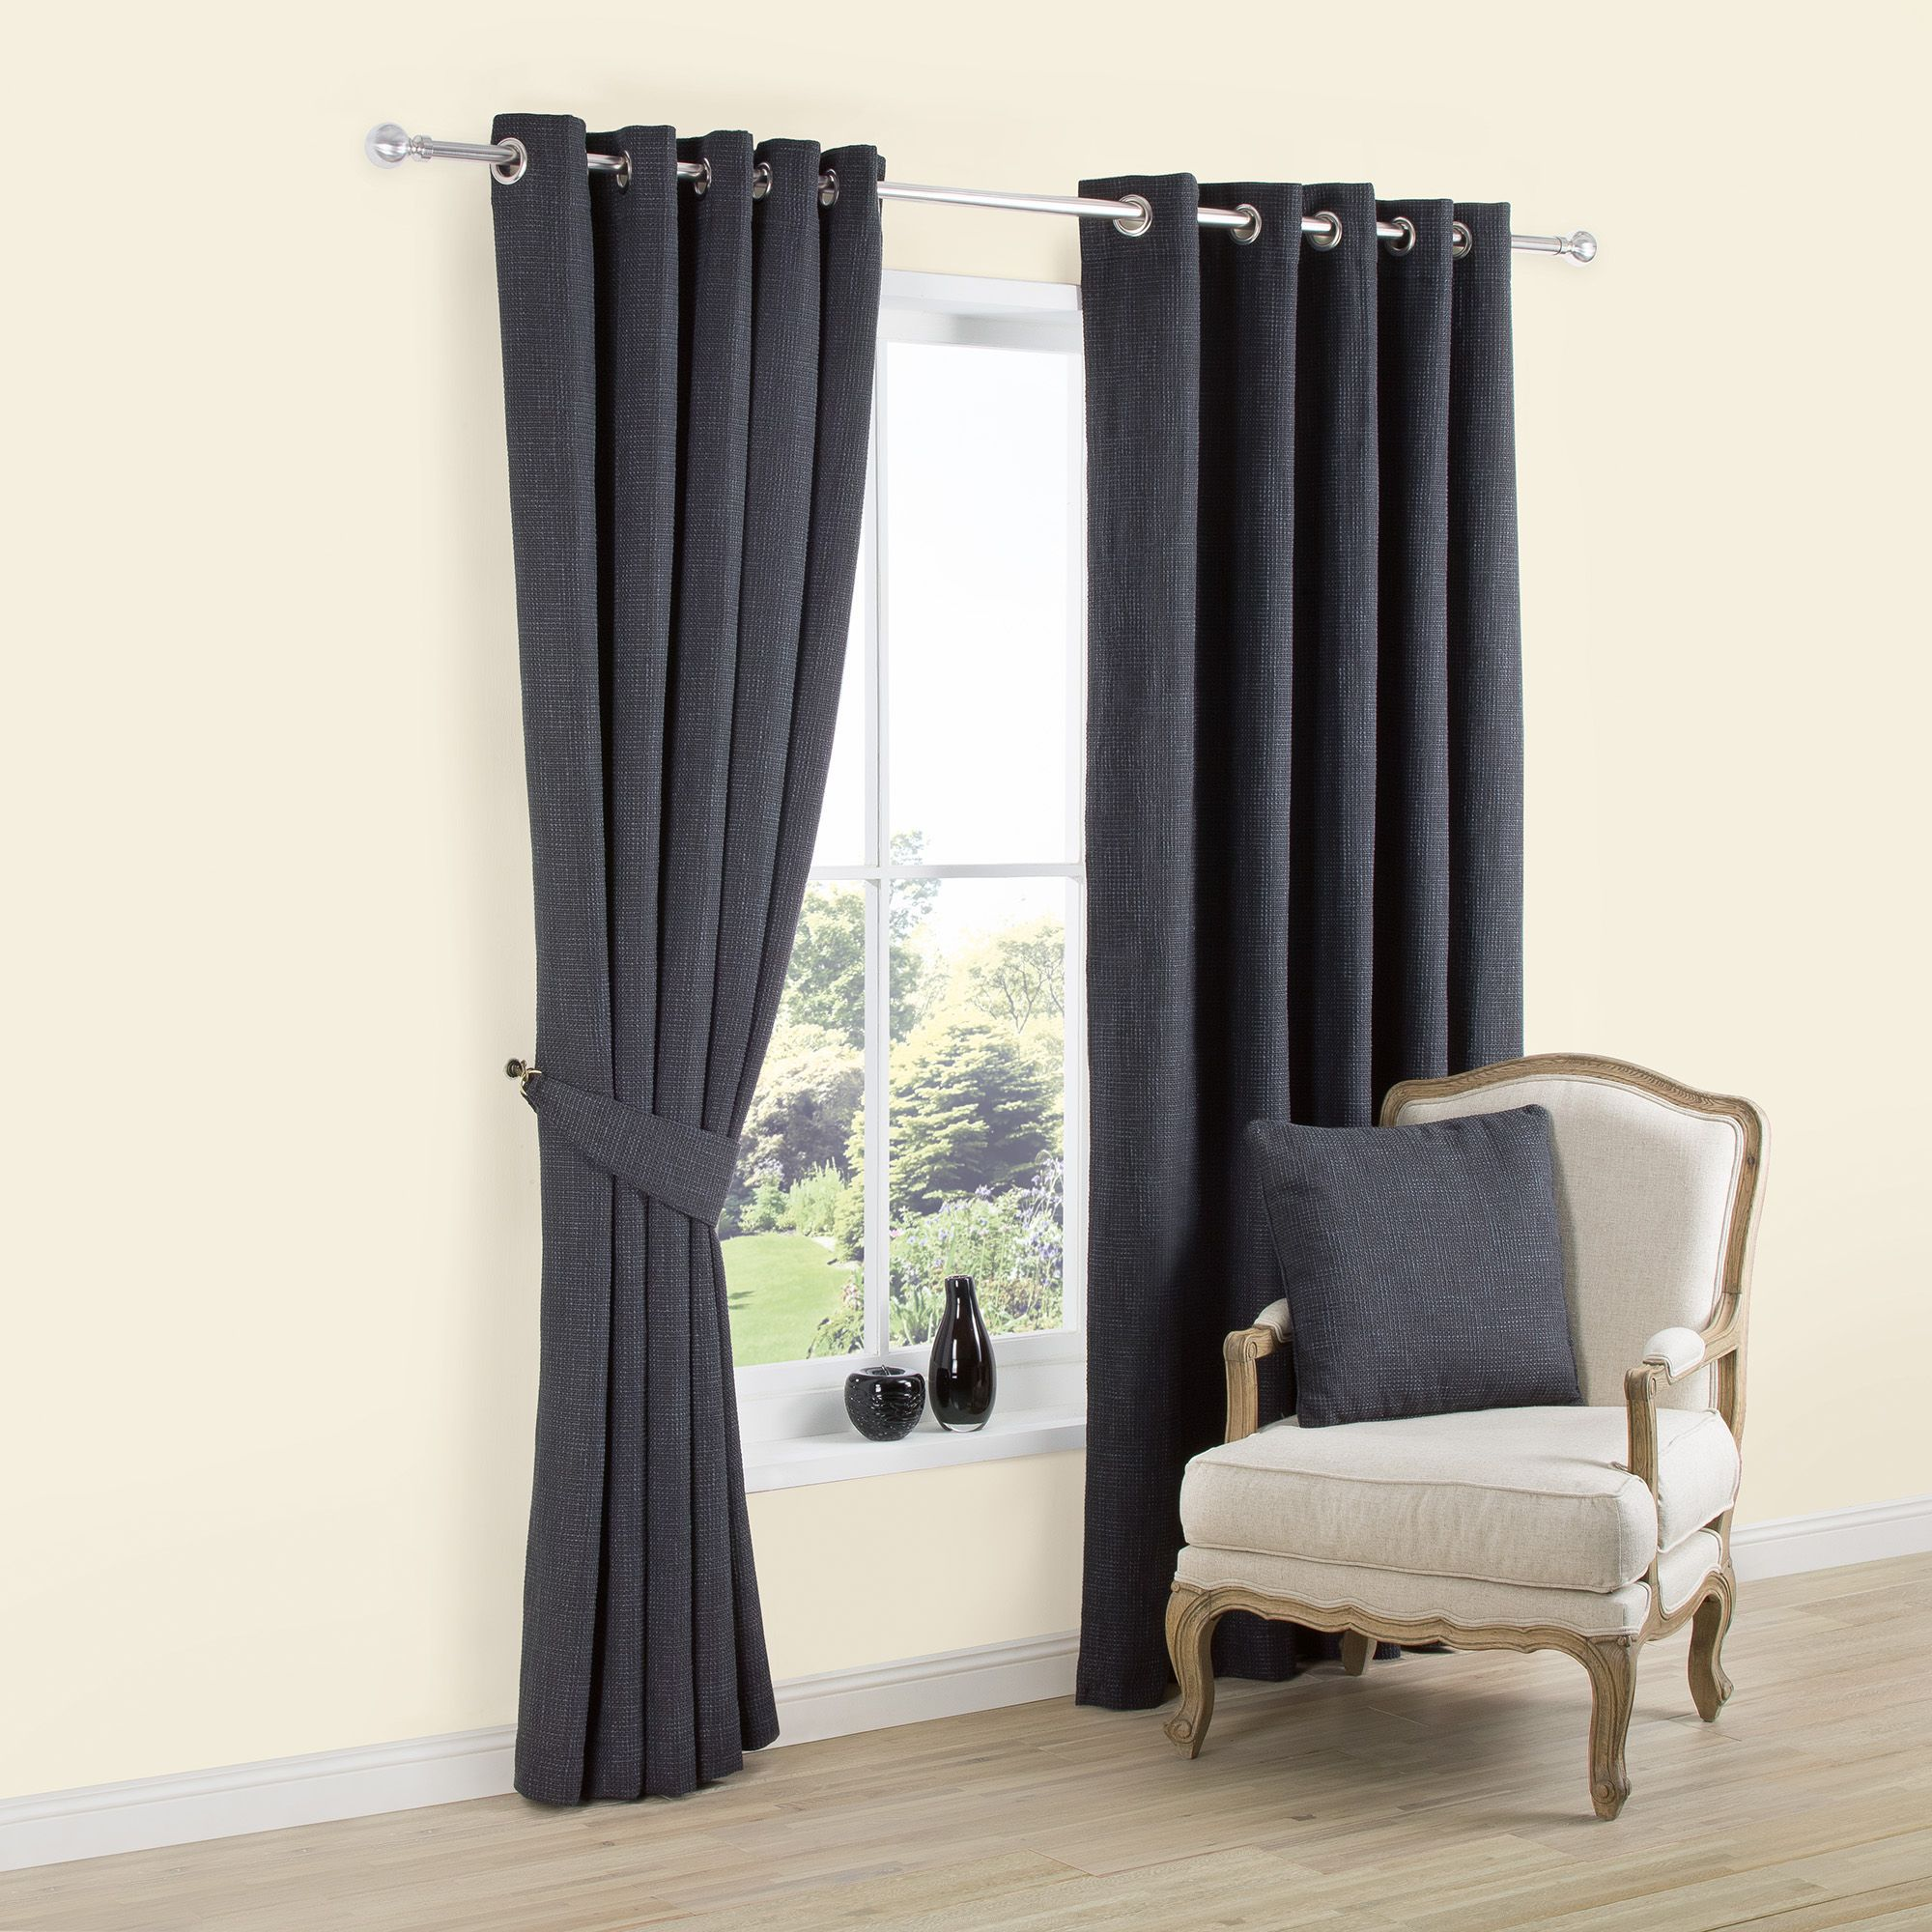 Carina Charcoal Plain Woven Eyelet Lined Curtains (W)167